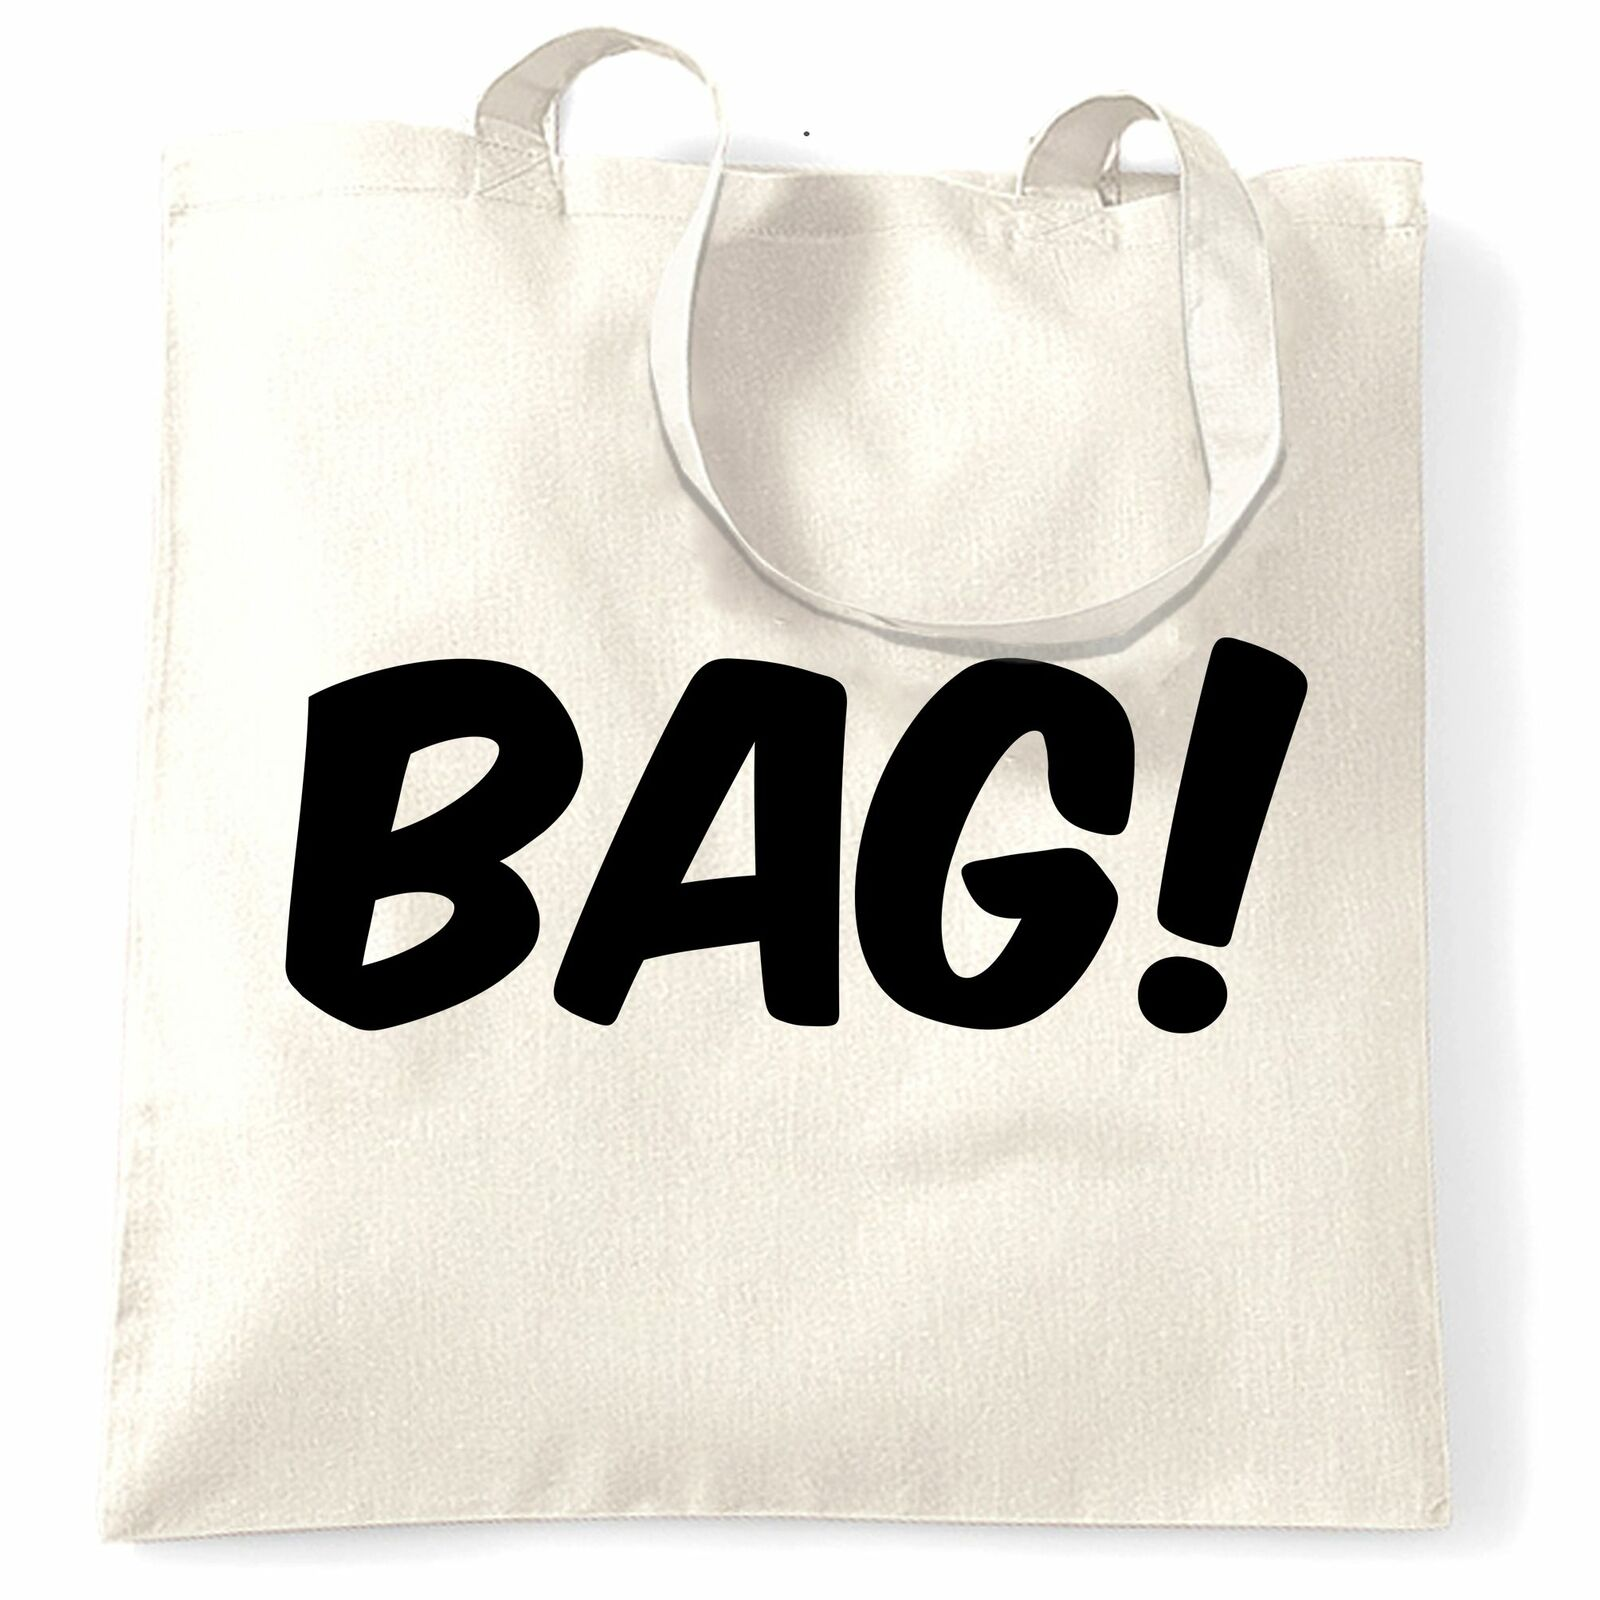 This Is My Tote Bag Stating The Obvious Funny Silly Slogan Text Simple